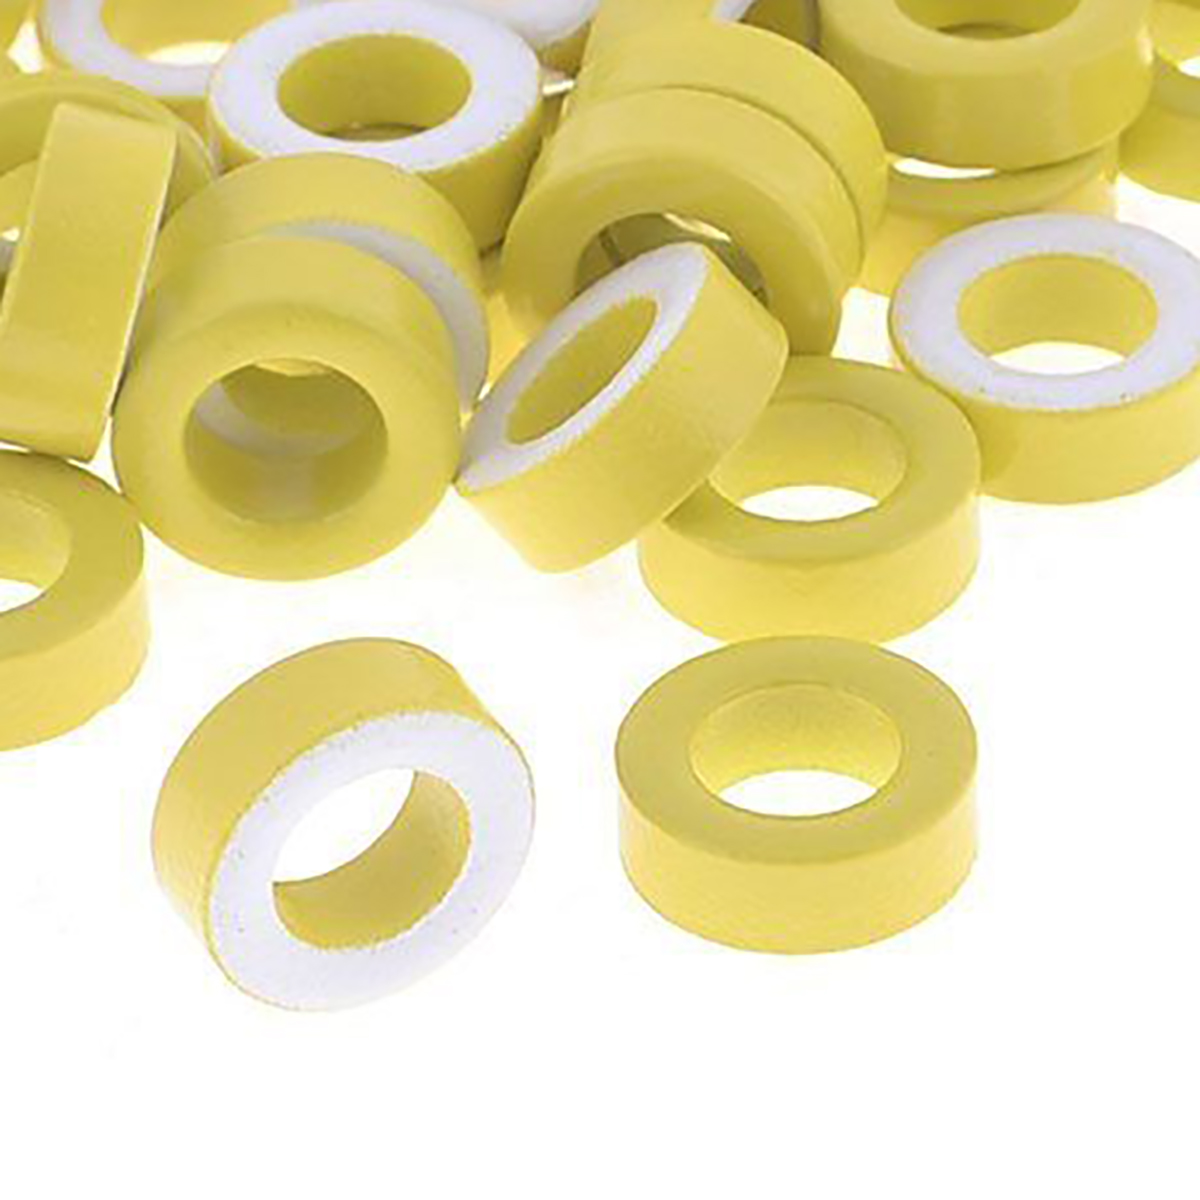 50pcs T50-26 Yellow White Ring Iron Ferrite Toroid Cores 7.5mm Inner Diameter For Inductors